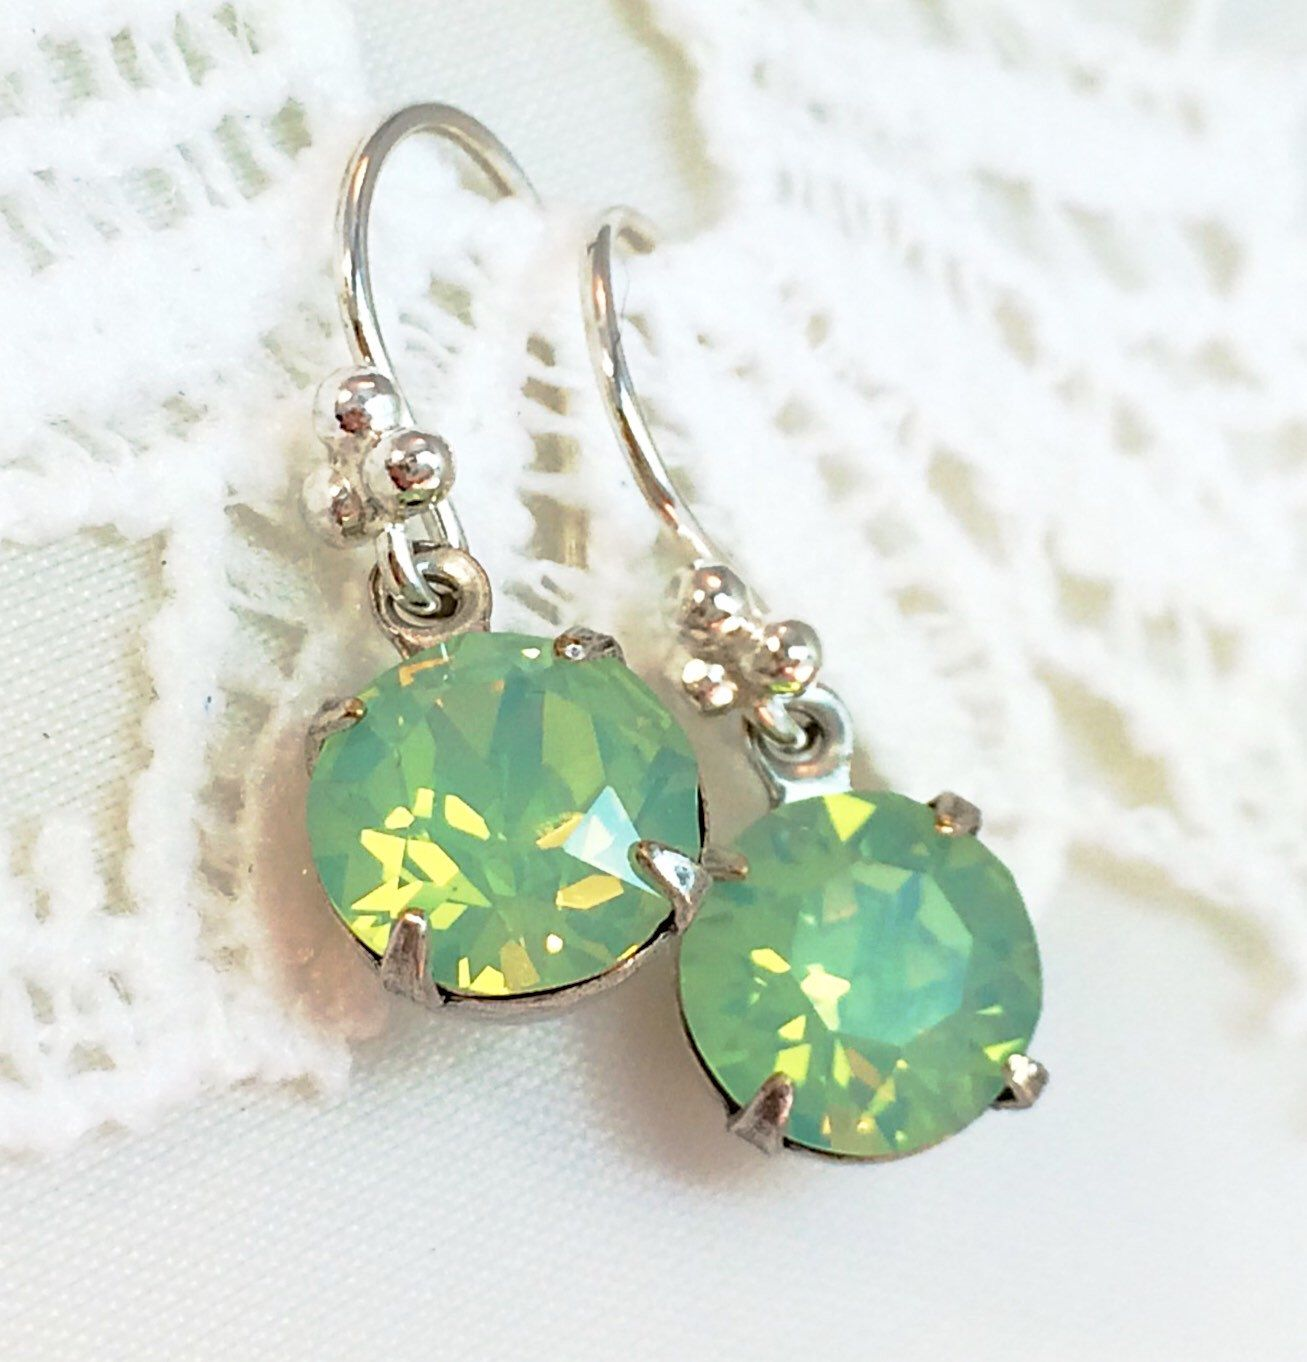 Chrysolite Chaton Crystal With Crystal From Swarovski, Chrysolite Earrings,  Swarovski Crystal Earrings